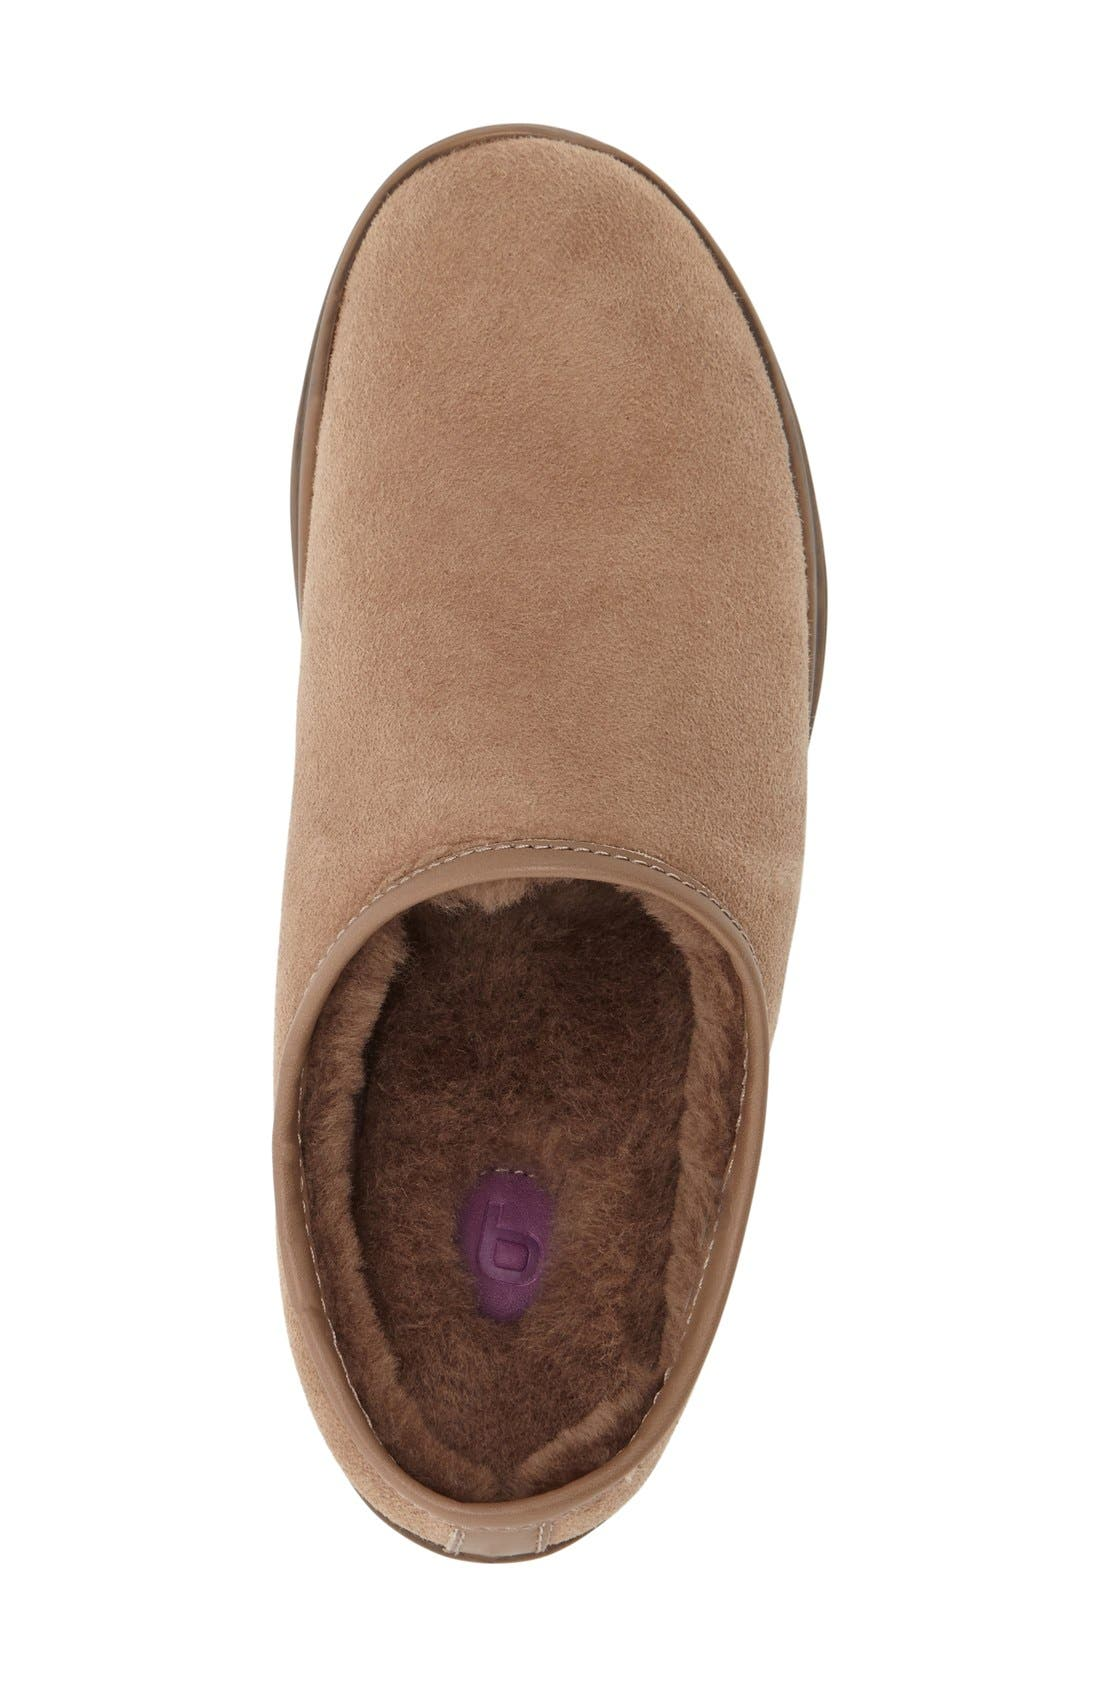 'Stamford' Genuine Shearling Clog Slipper,                             Alternate thumbnail 2, color,                             Stone Shearling/ Leather